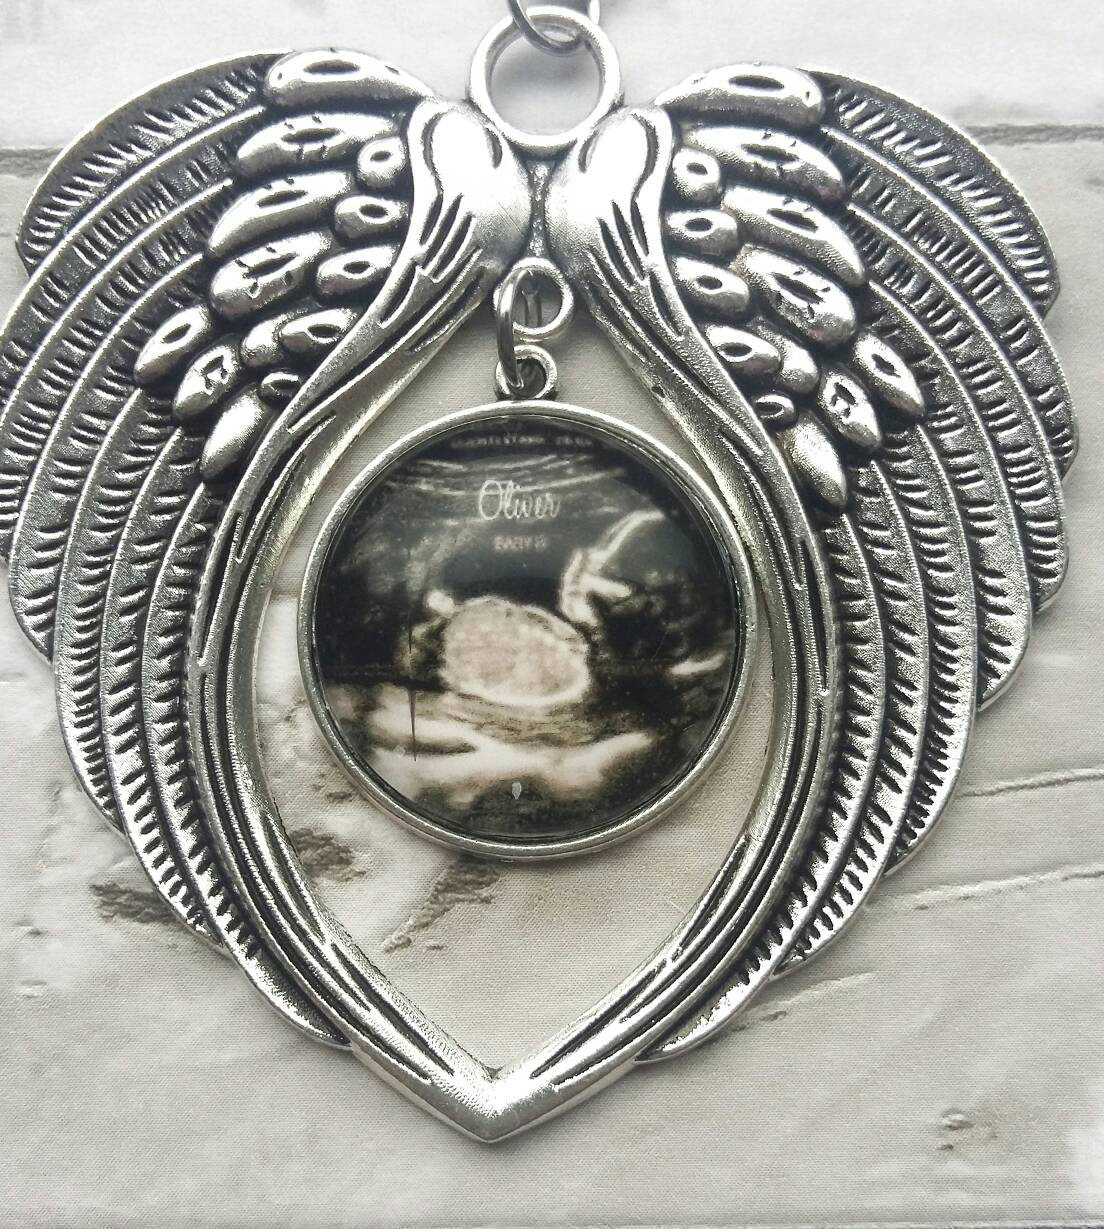 Miscarriage Memorial Ornament- personalized with ultrasound